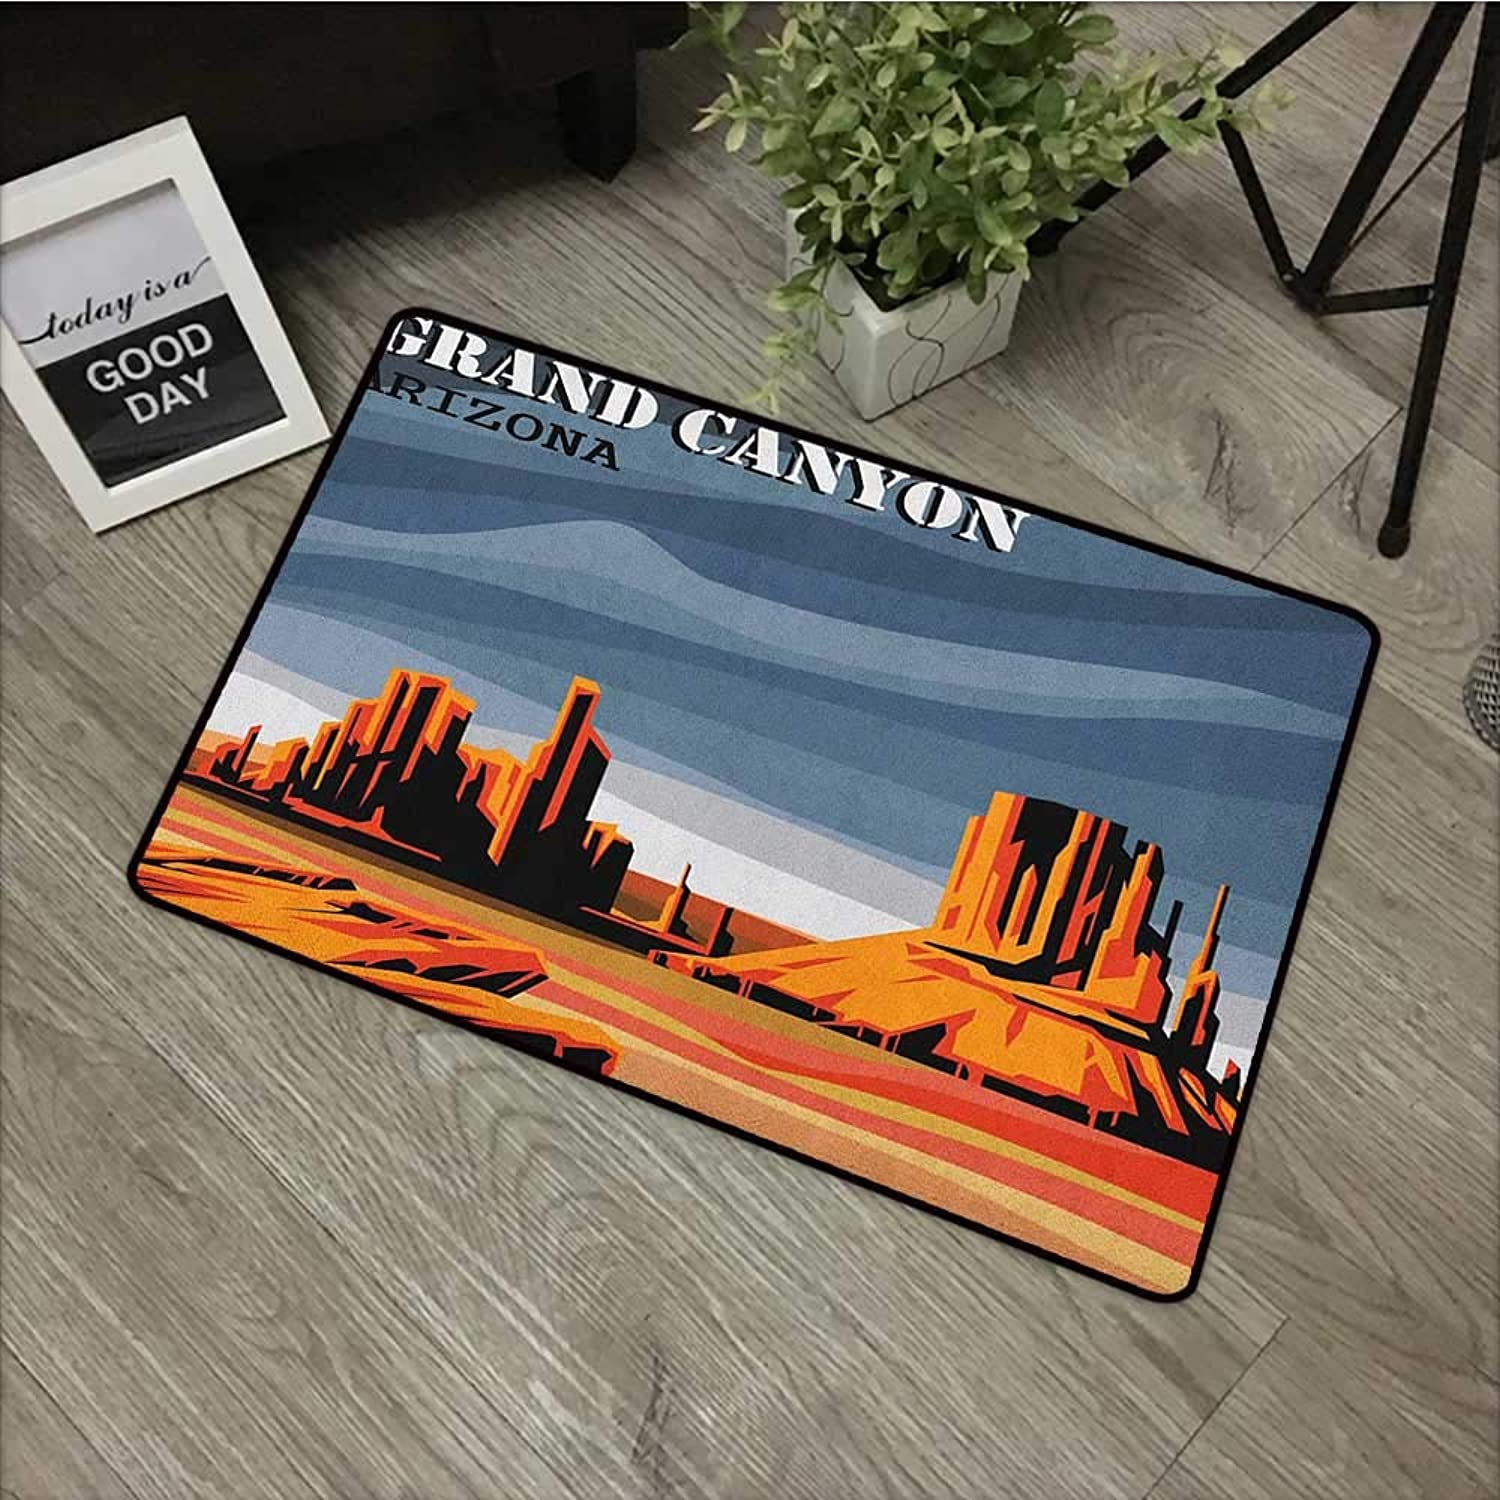 Square Door mat W35 x L59 INCH Canyon,Major Canyon Fantastic Shadows and Contrasts with Digital Added Dimesions Print, bluee orange Non-Slip, with Non-Slip Backing,Non-Slip Door Mat Carpet